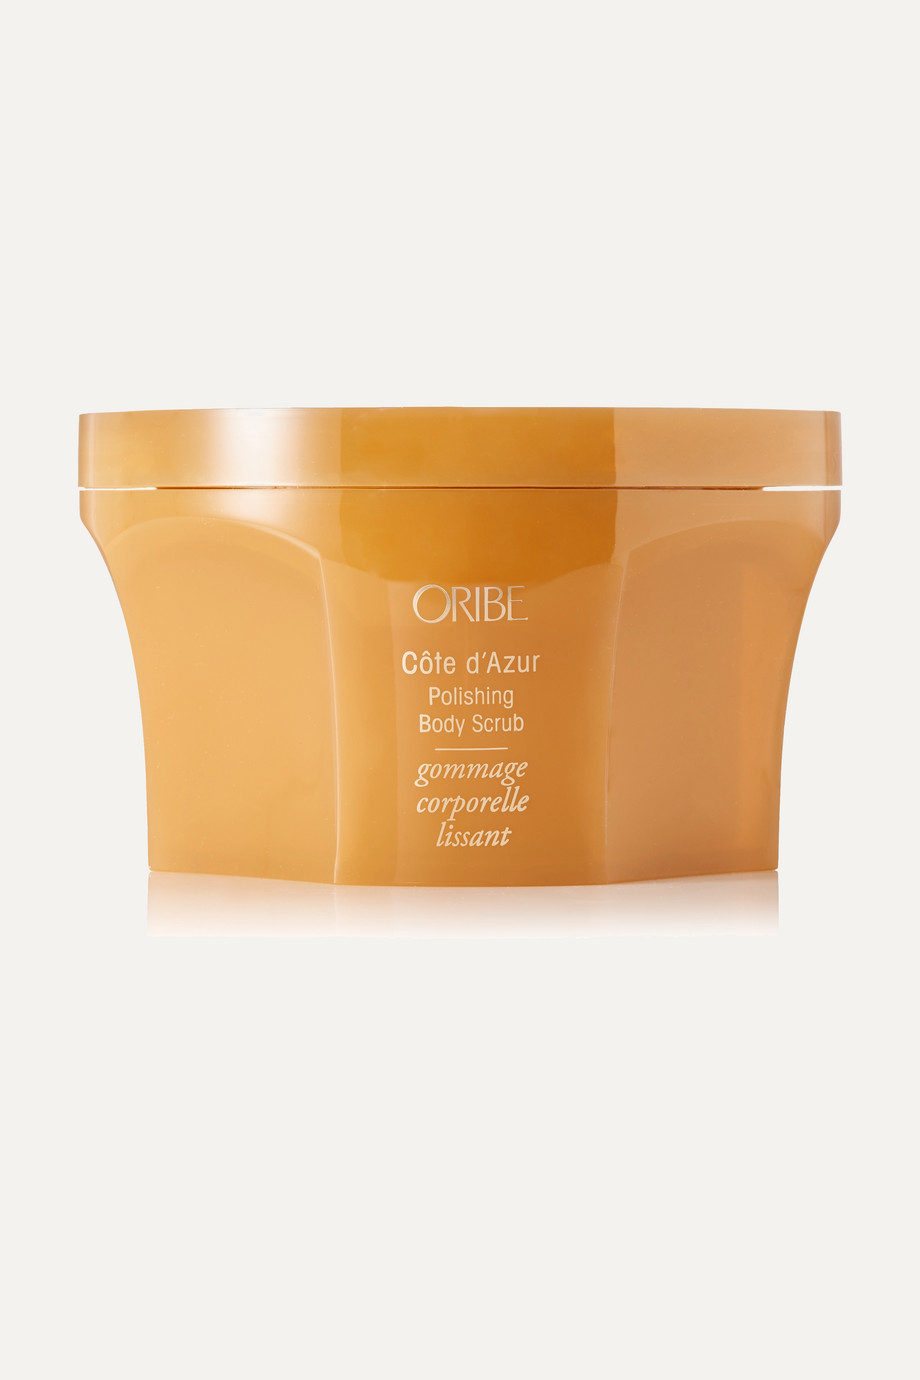 Oribe Côte d'Azur Polishing Body Scrub, 196g